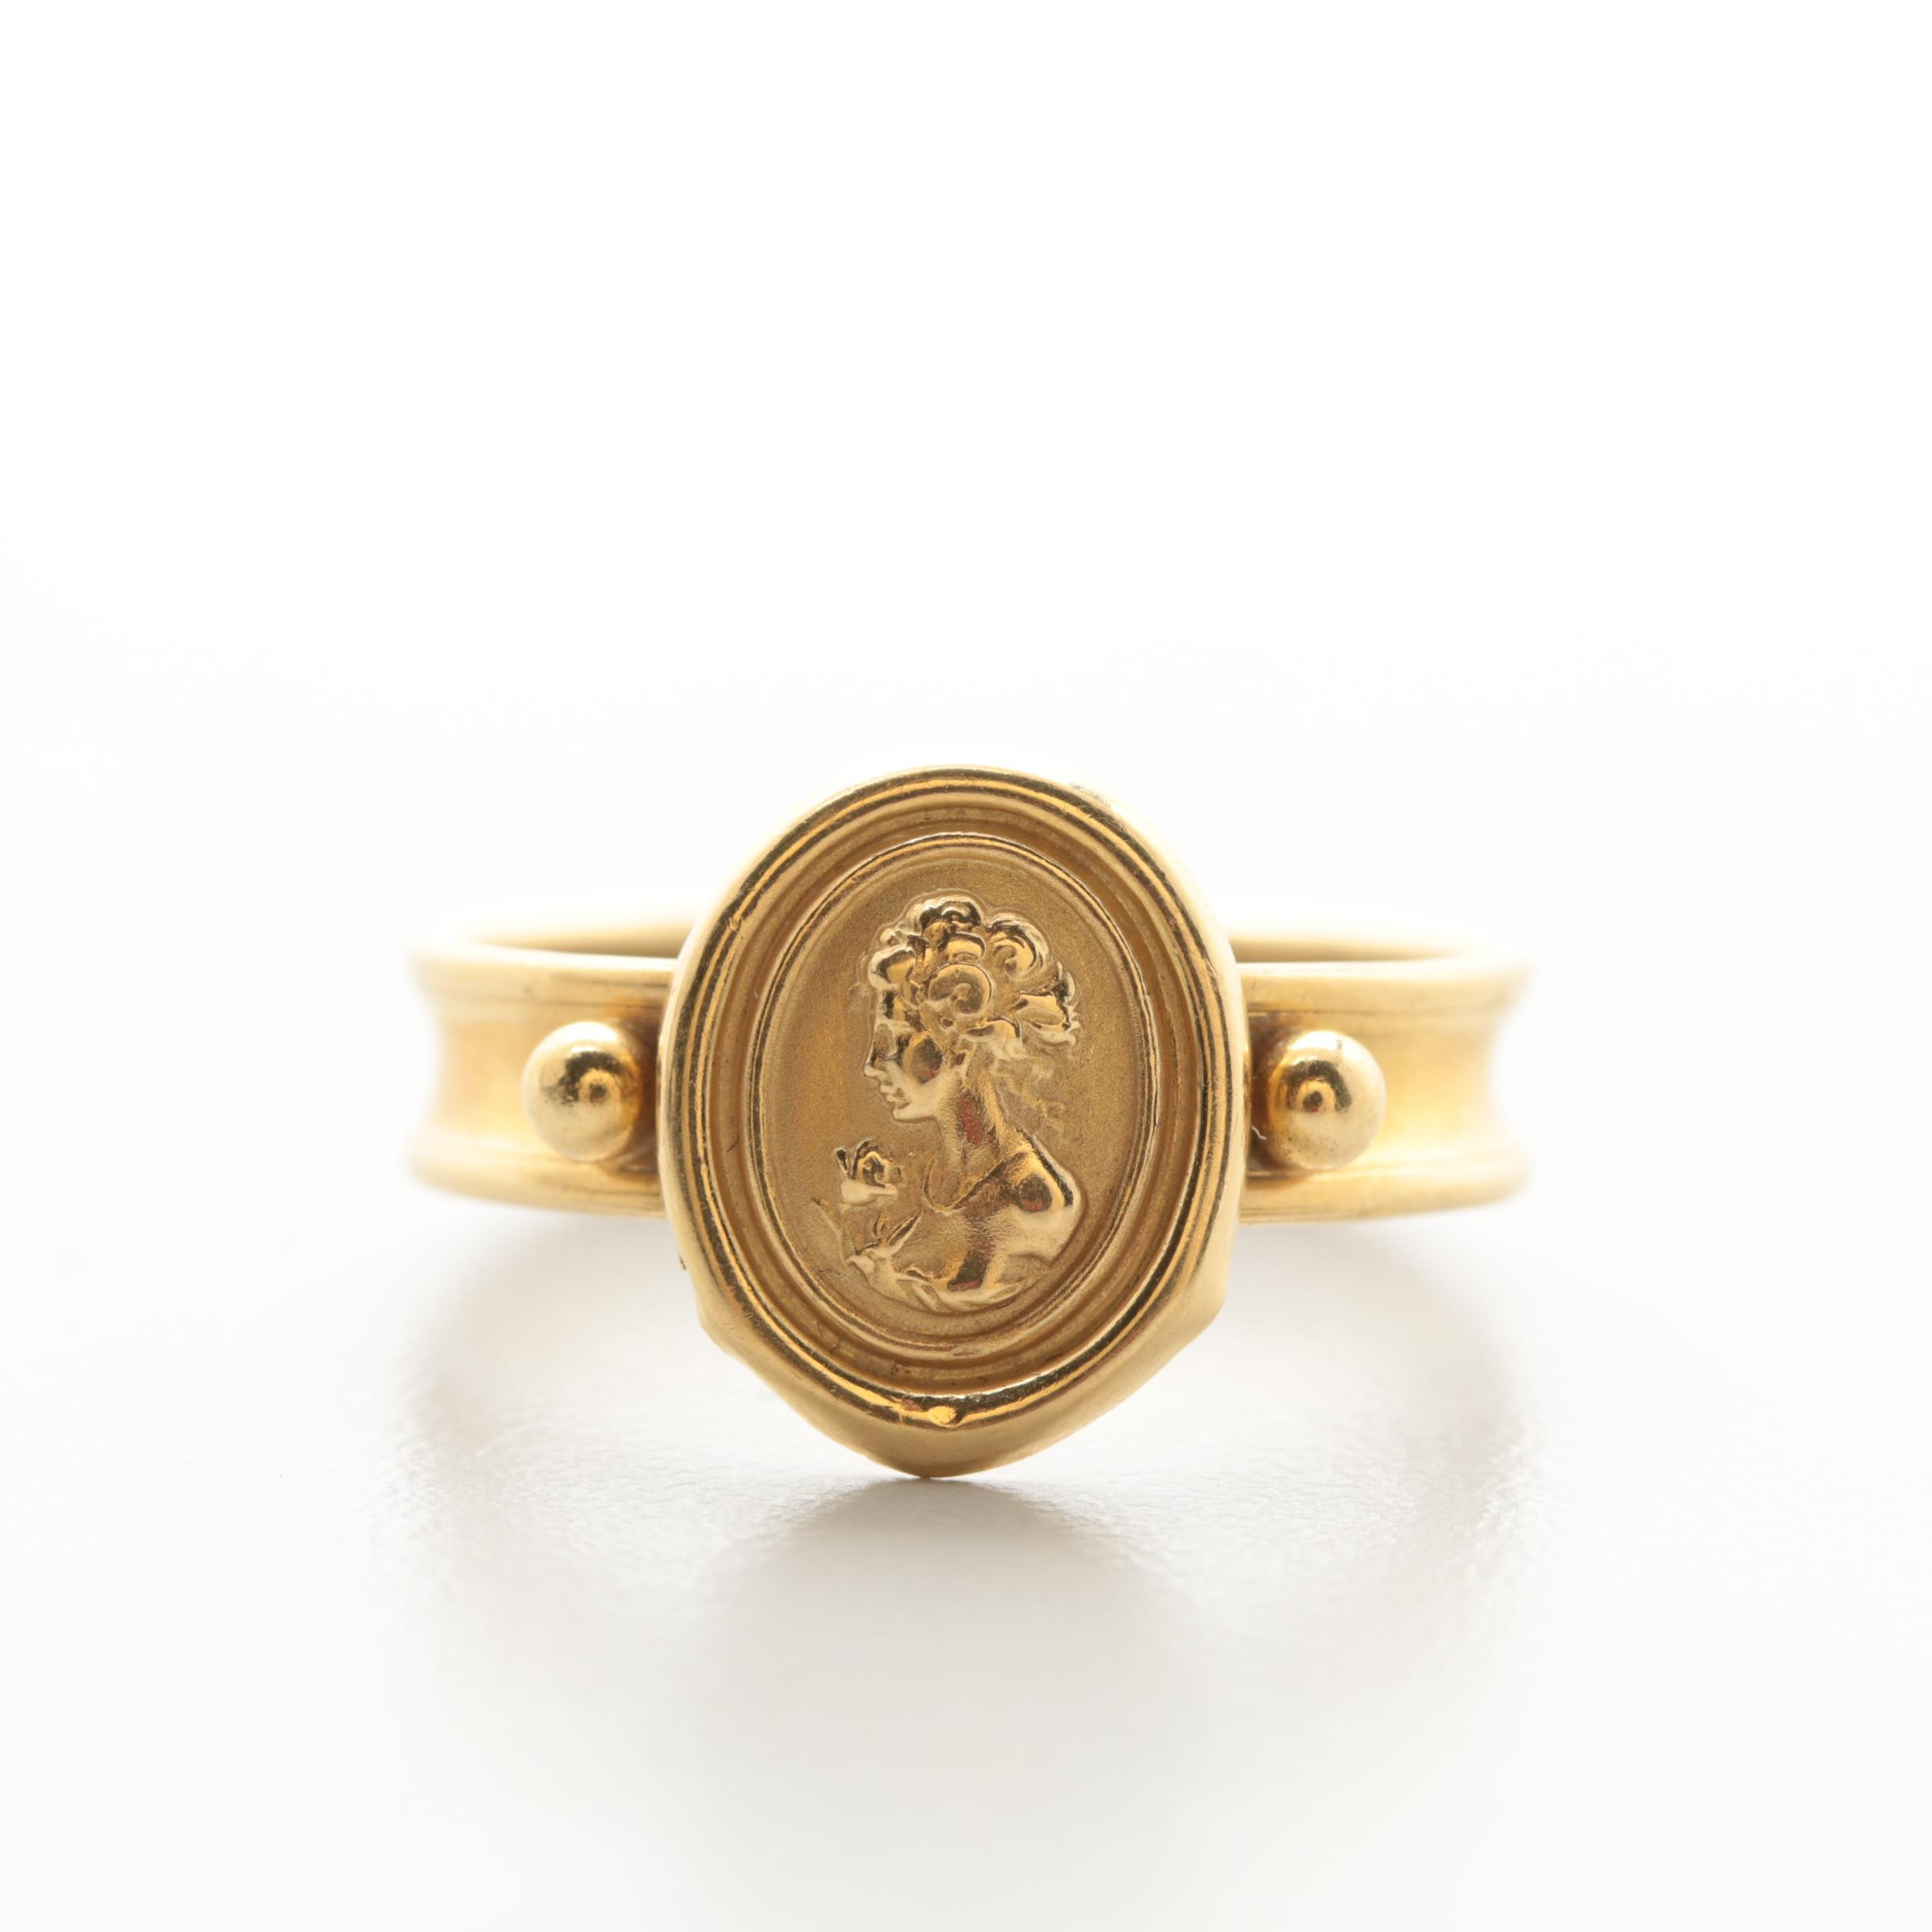 Milor 18K Yellow Gold Cameo Style Ring